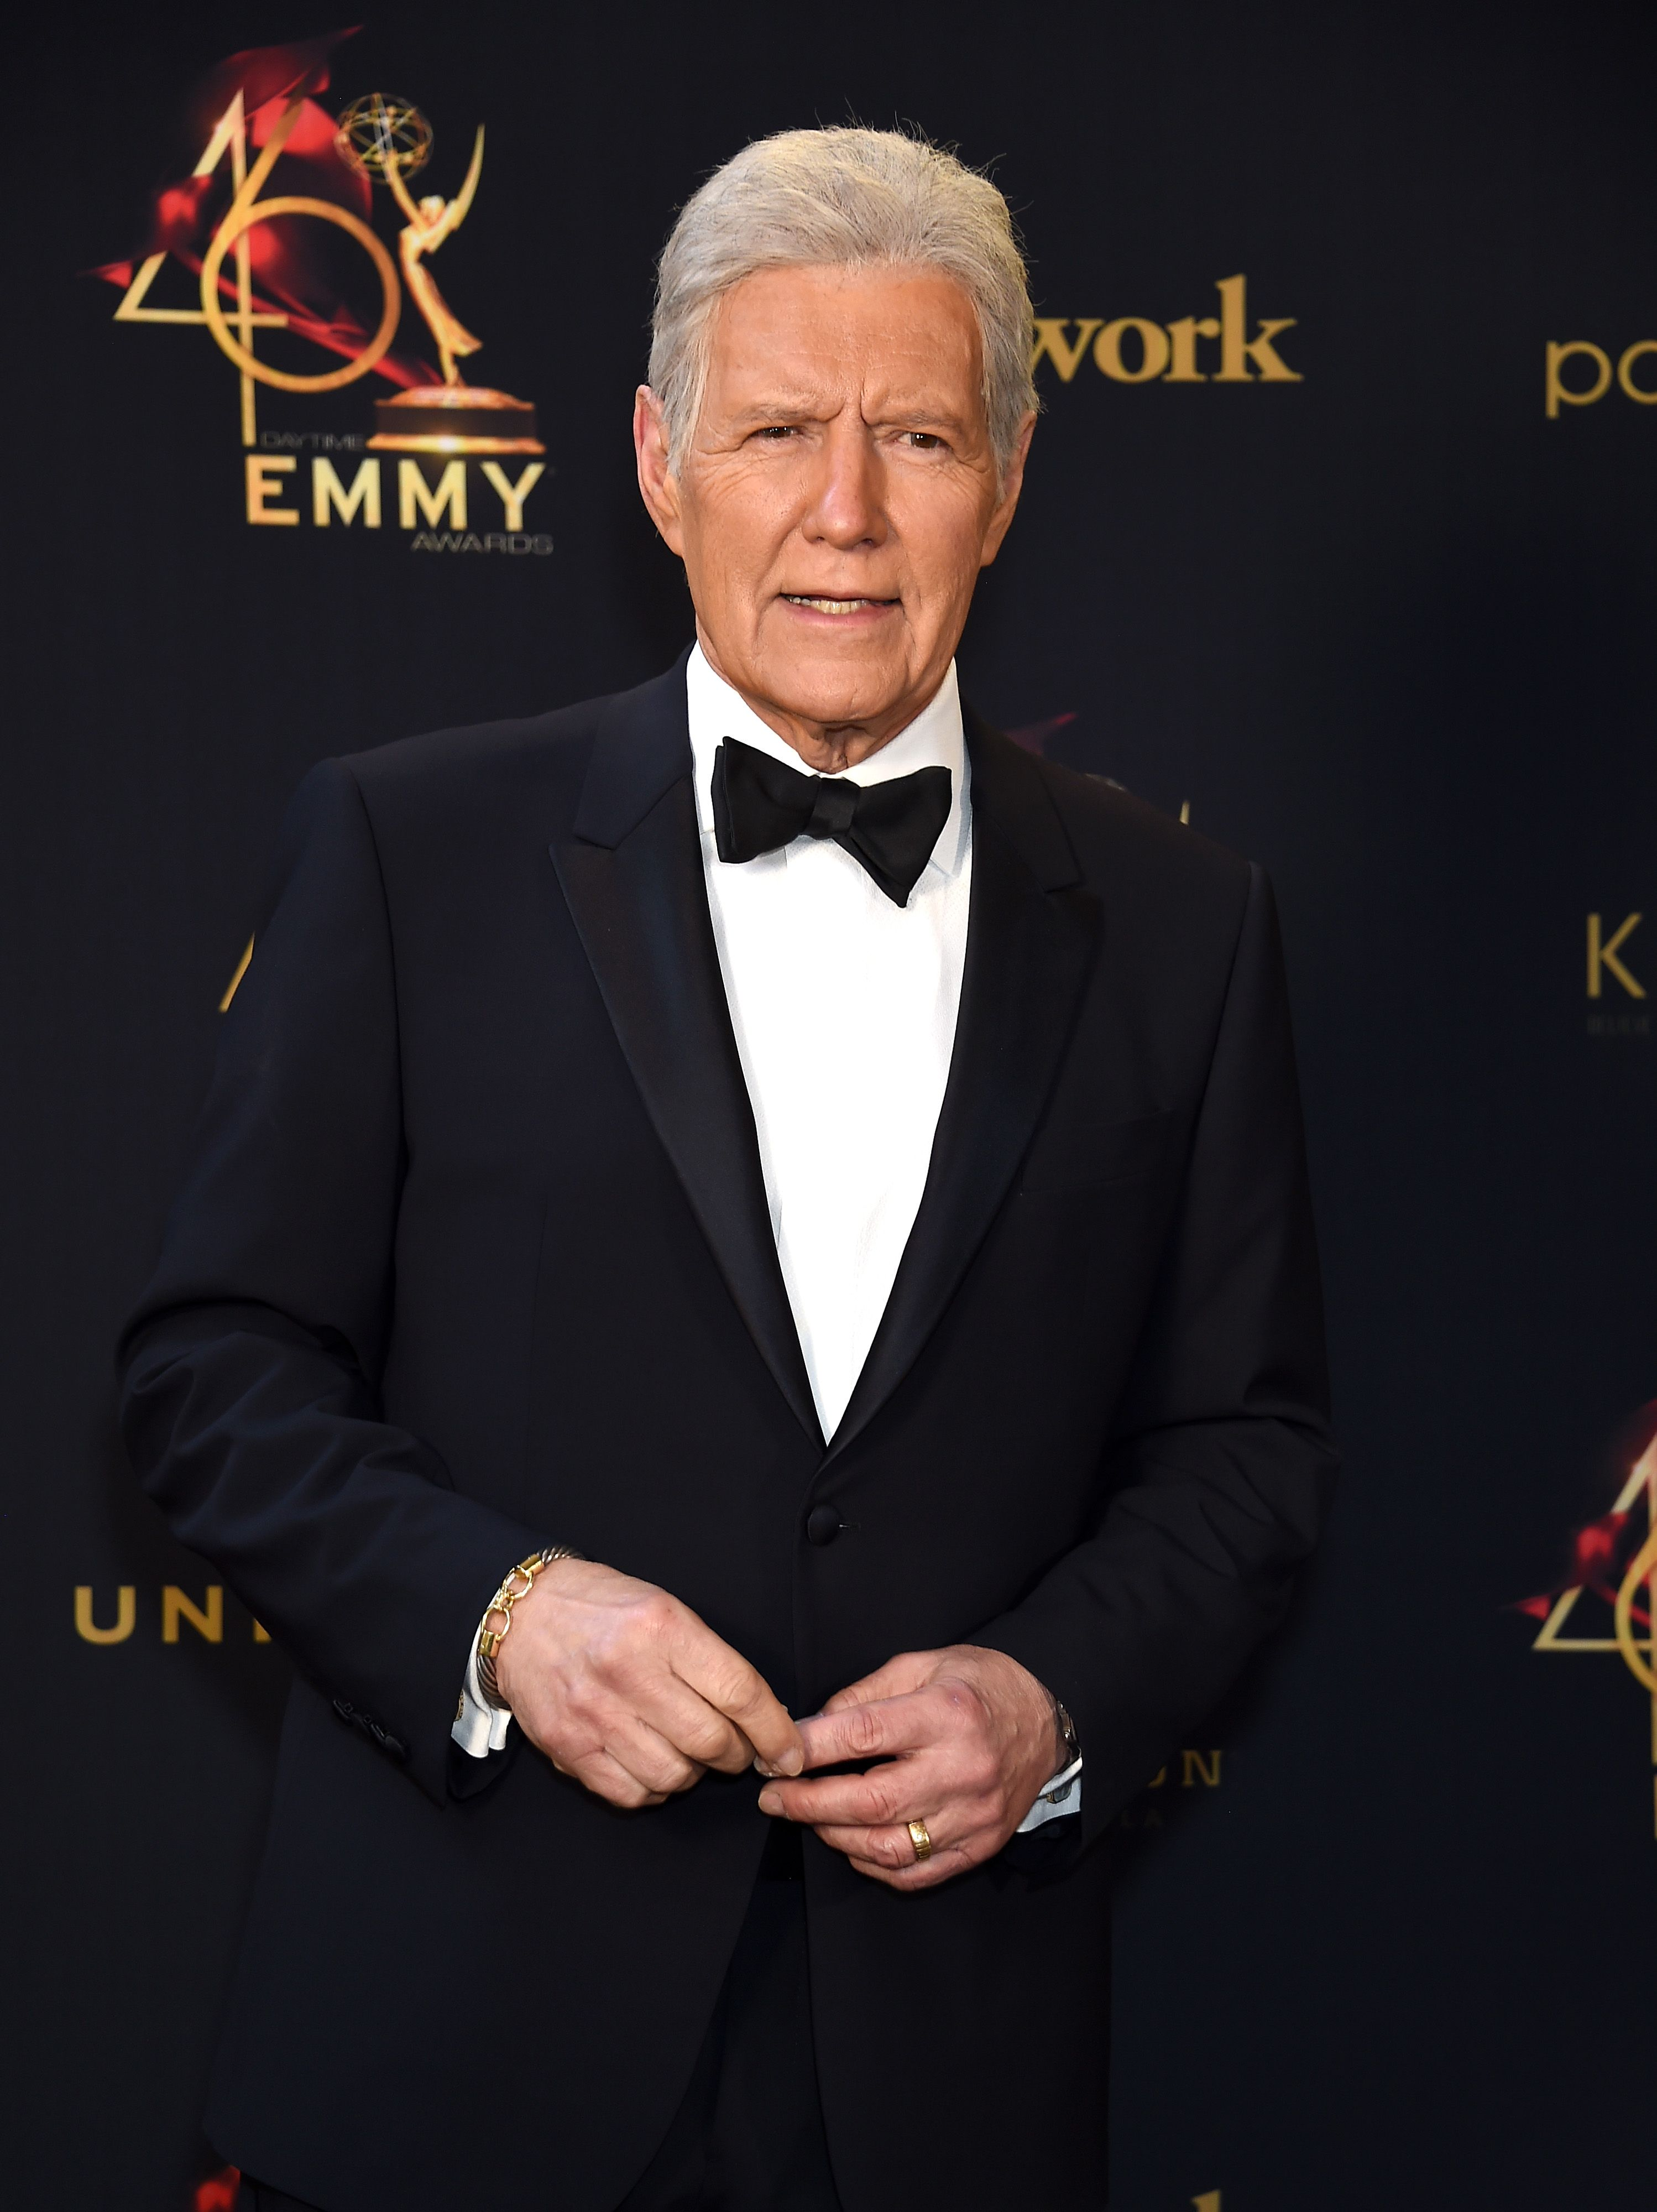 Alex Trebek's Memoir 'The Answer Is...' To Be Published In July - Fame10